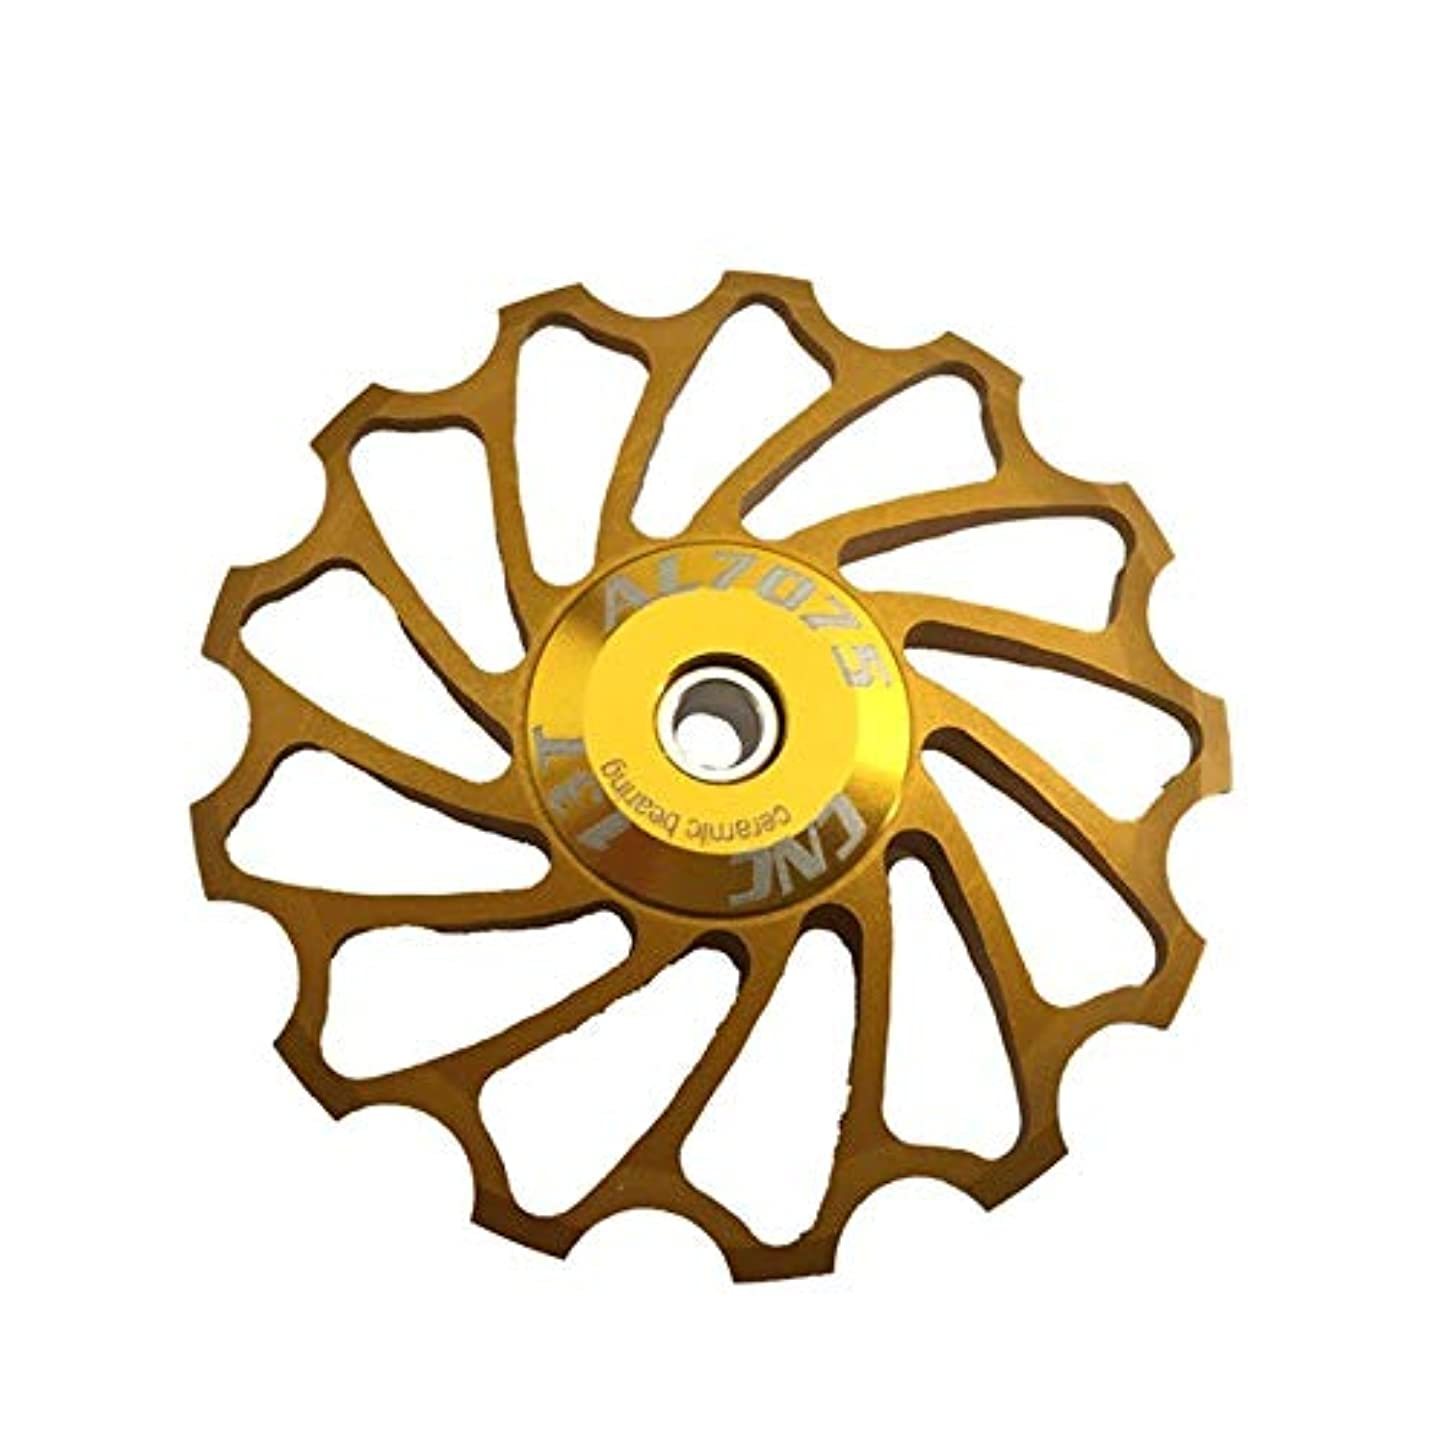 ベーカリー世界に死んだビリーヤギPropenary - Cycling bike ceramics Jockey Wheel Rear Derailleur Pulley 13T 7075 Aluminum alloy bicycle guide pulley bearing bicycle parts [ Gold ]